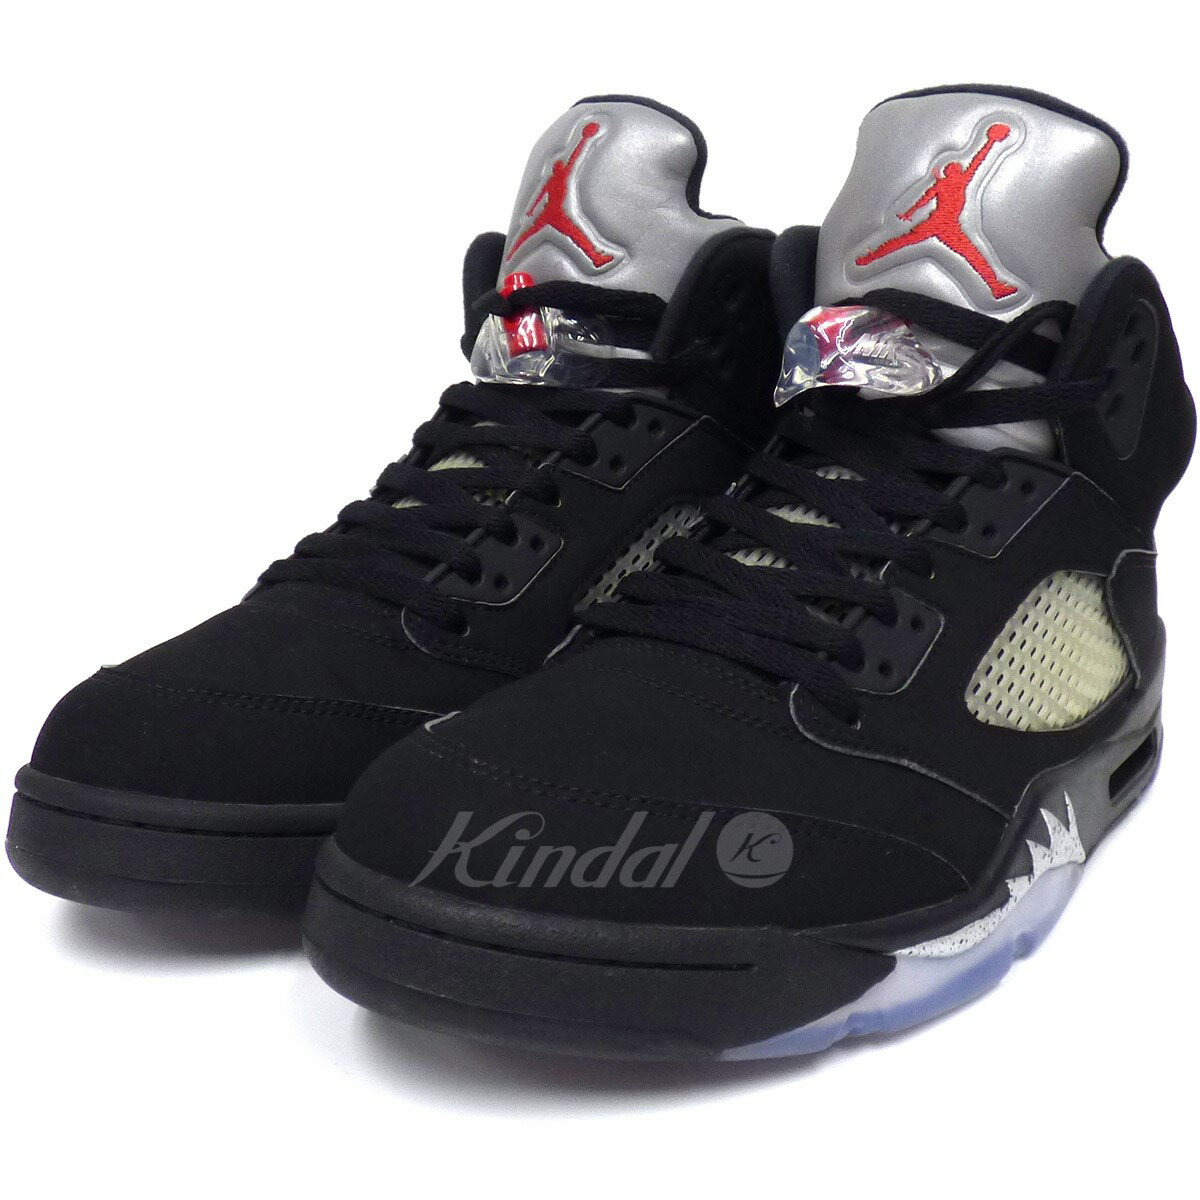 brand new c9aeb 75633 NIKE Air Jordan 5 Retro OG Black Metallic Air Jordan sneakers black size:  US10. 5 (28.5cm) (Nike)